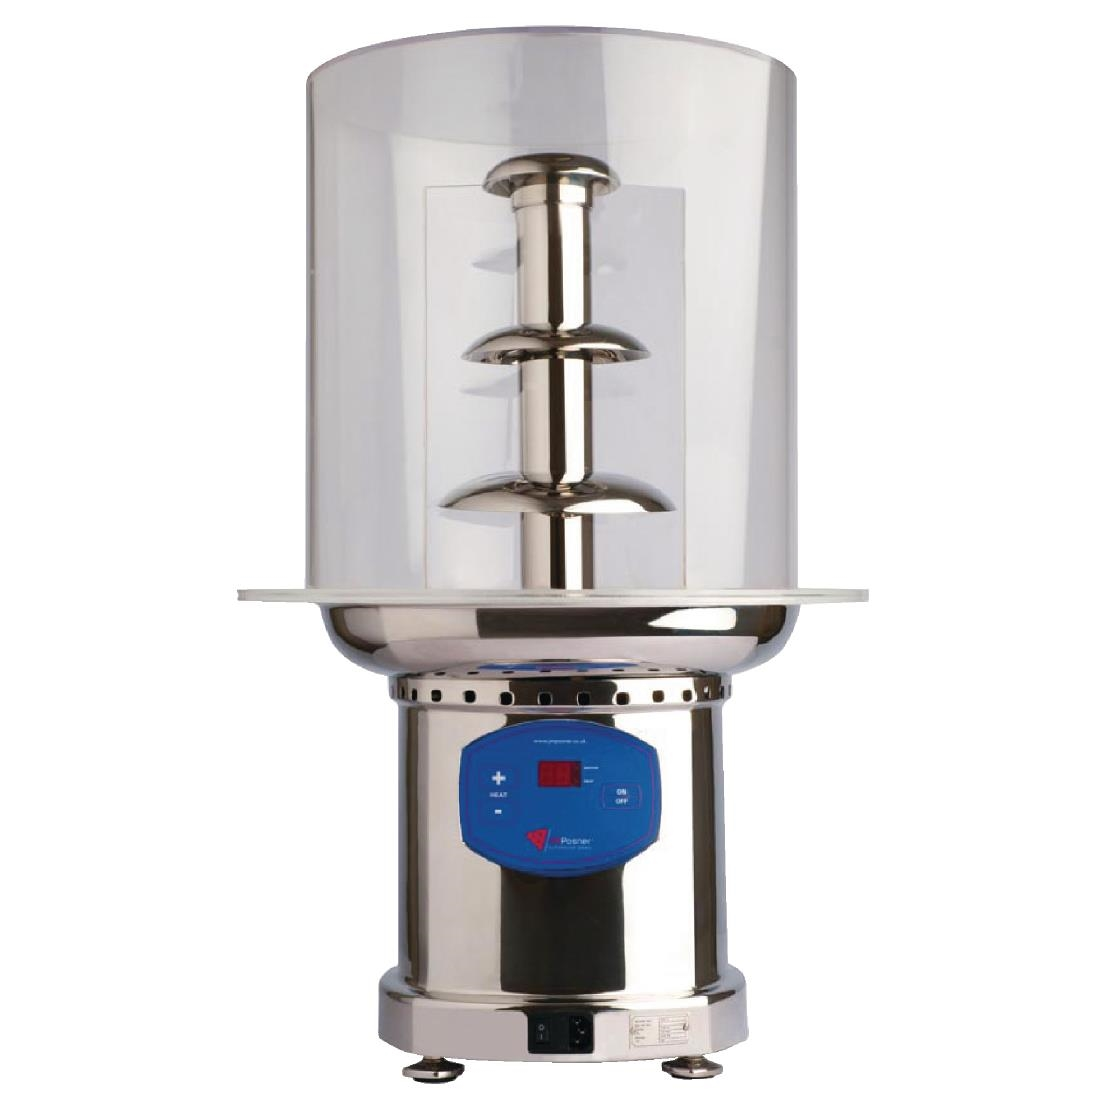 Image of JM Posner Chocolate Fountain Wind Guard for DK776